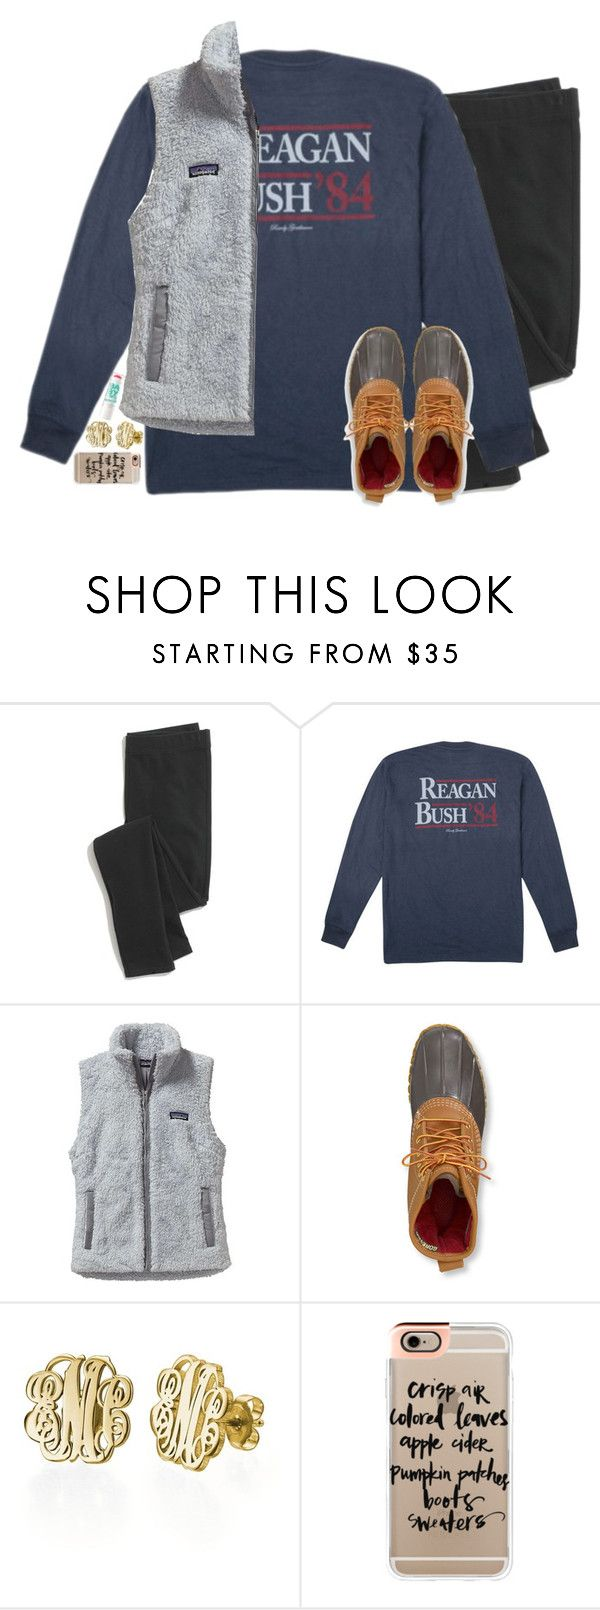 """""""Reagan Bush' 84"""" by emmig02 ❤ liked on Polyvore featuring Madewell, Patagonia, L.L.Bean, My Name Necklace, Maybelline and Casetify"""